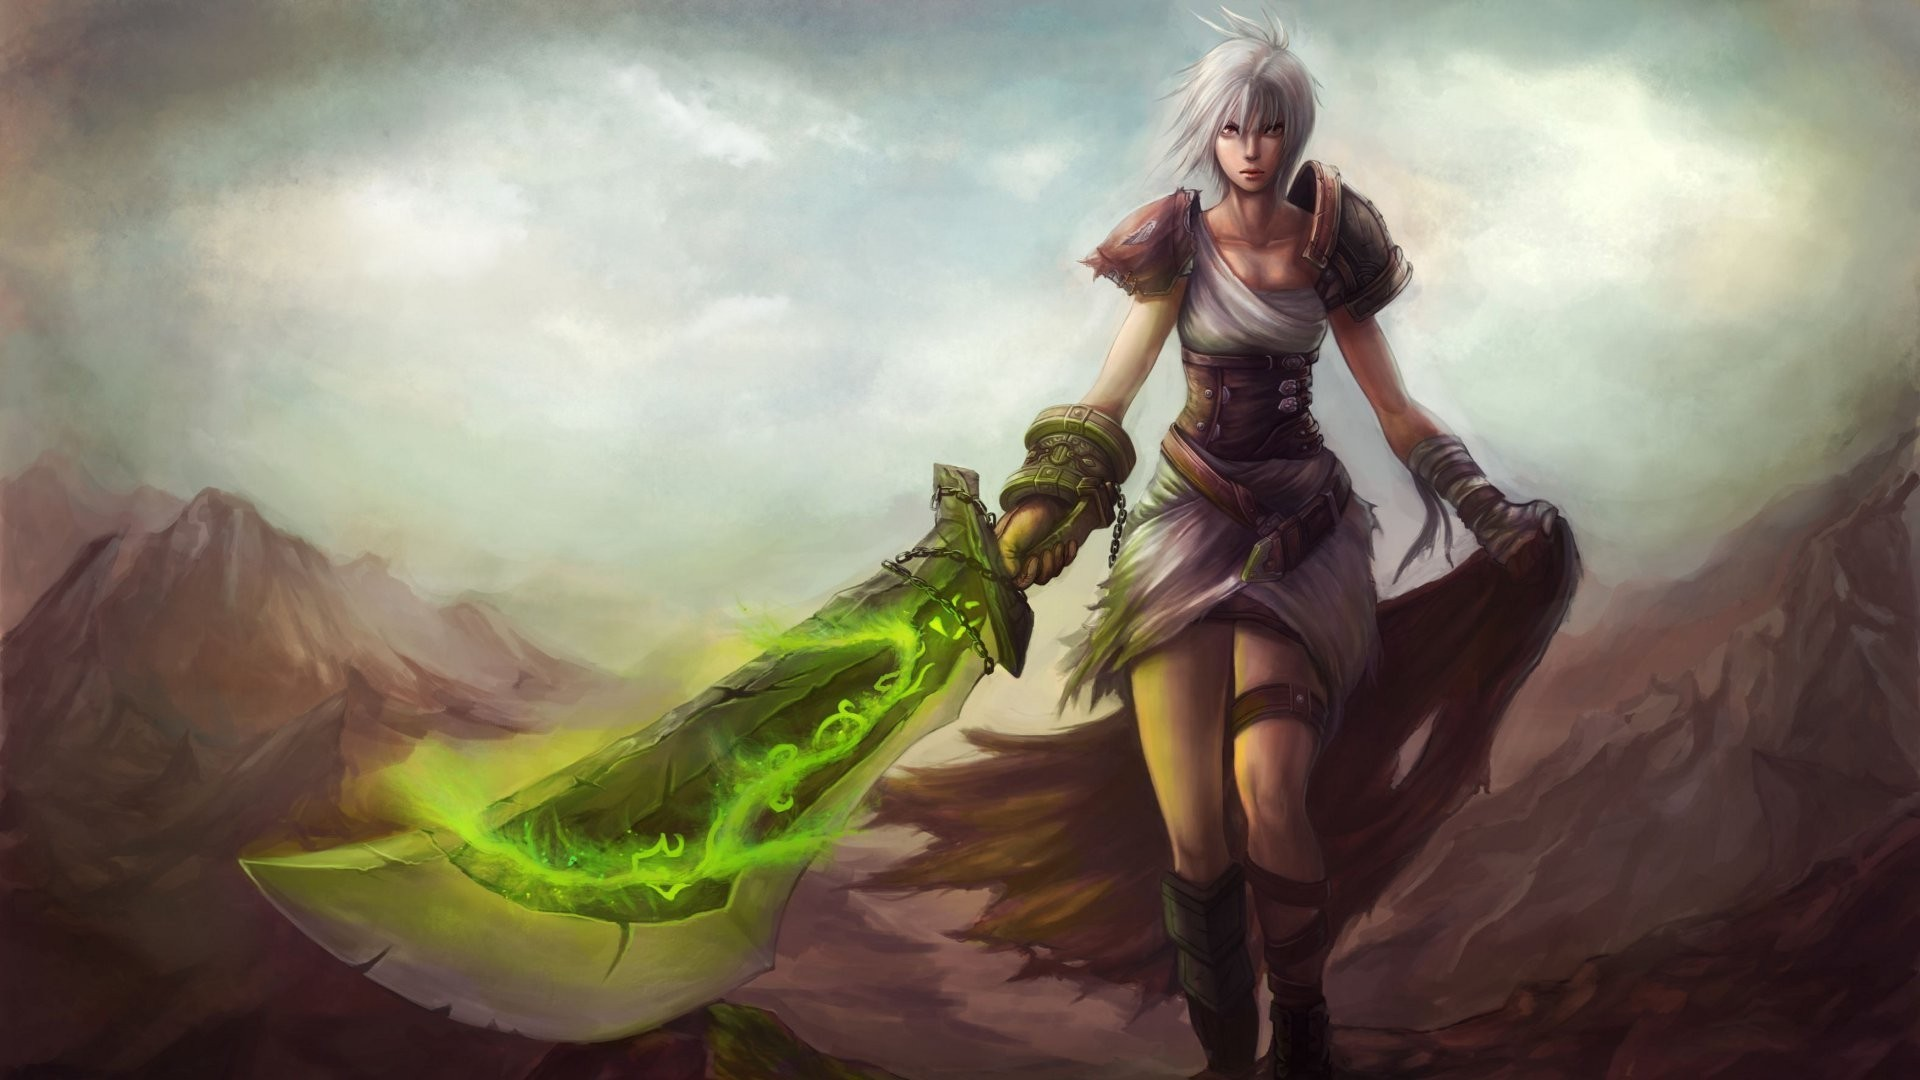 1920x1080 Riven Wallpaper